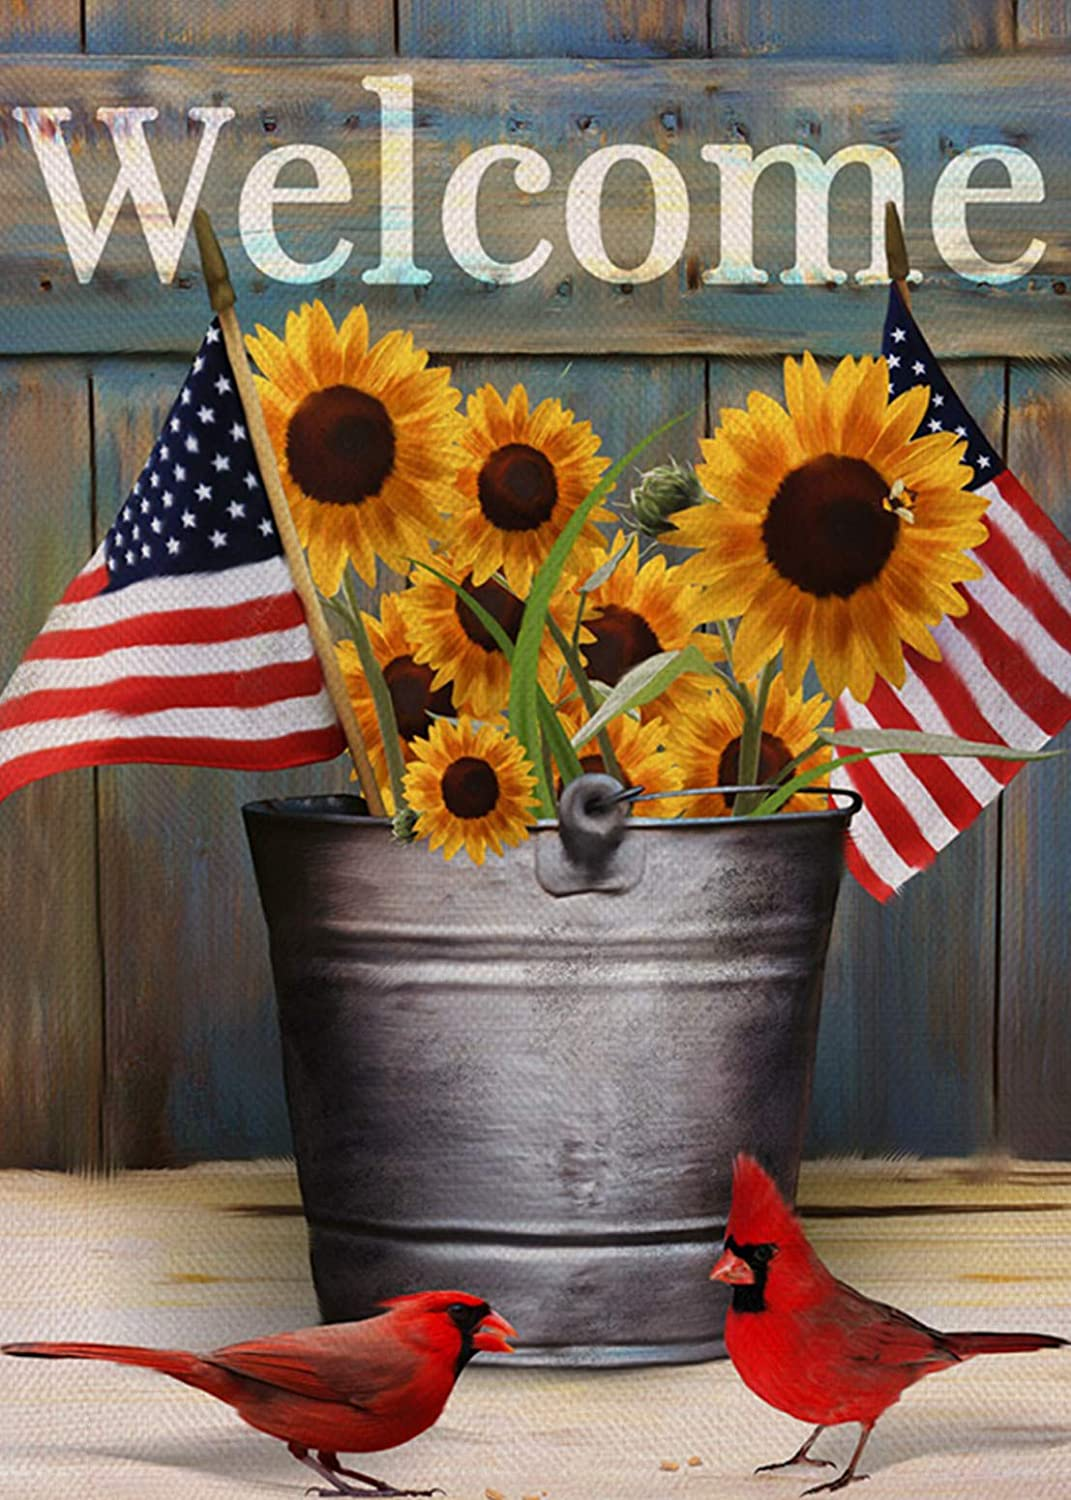 Furiaz Welcome Fall Sunflower Garden Flag, Patriotic American Home Decorative House Yard Small Flag Cardinal Birds Decor Double Sided, Autumn Outdoor Decoration USA Veterans Day Outside Flag 12x18